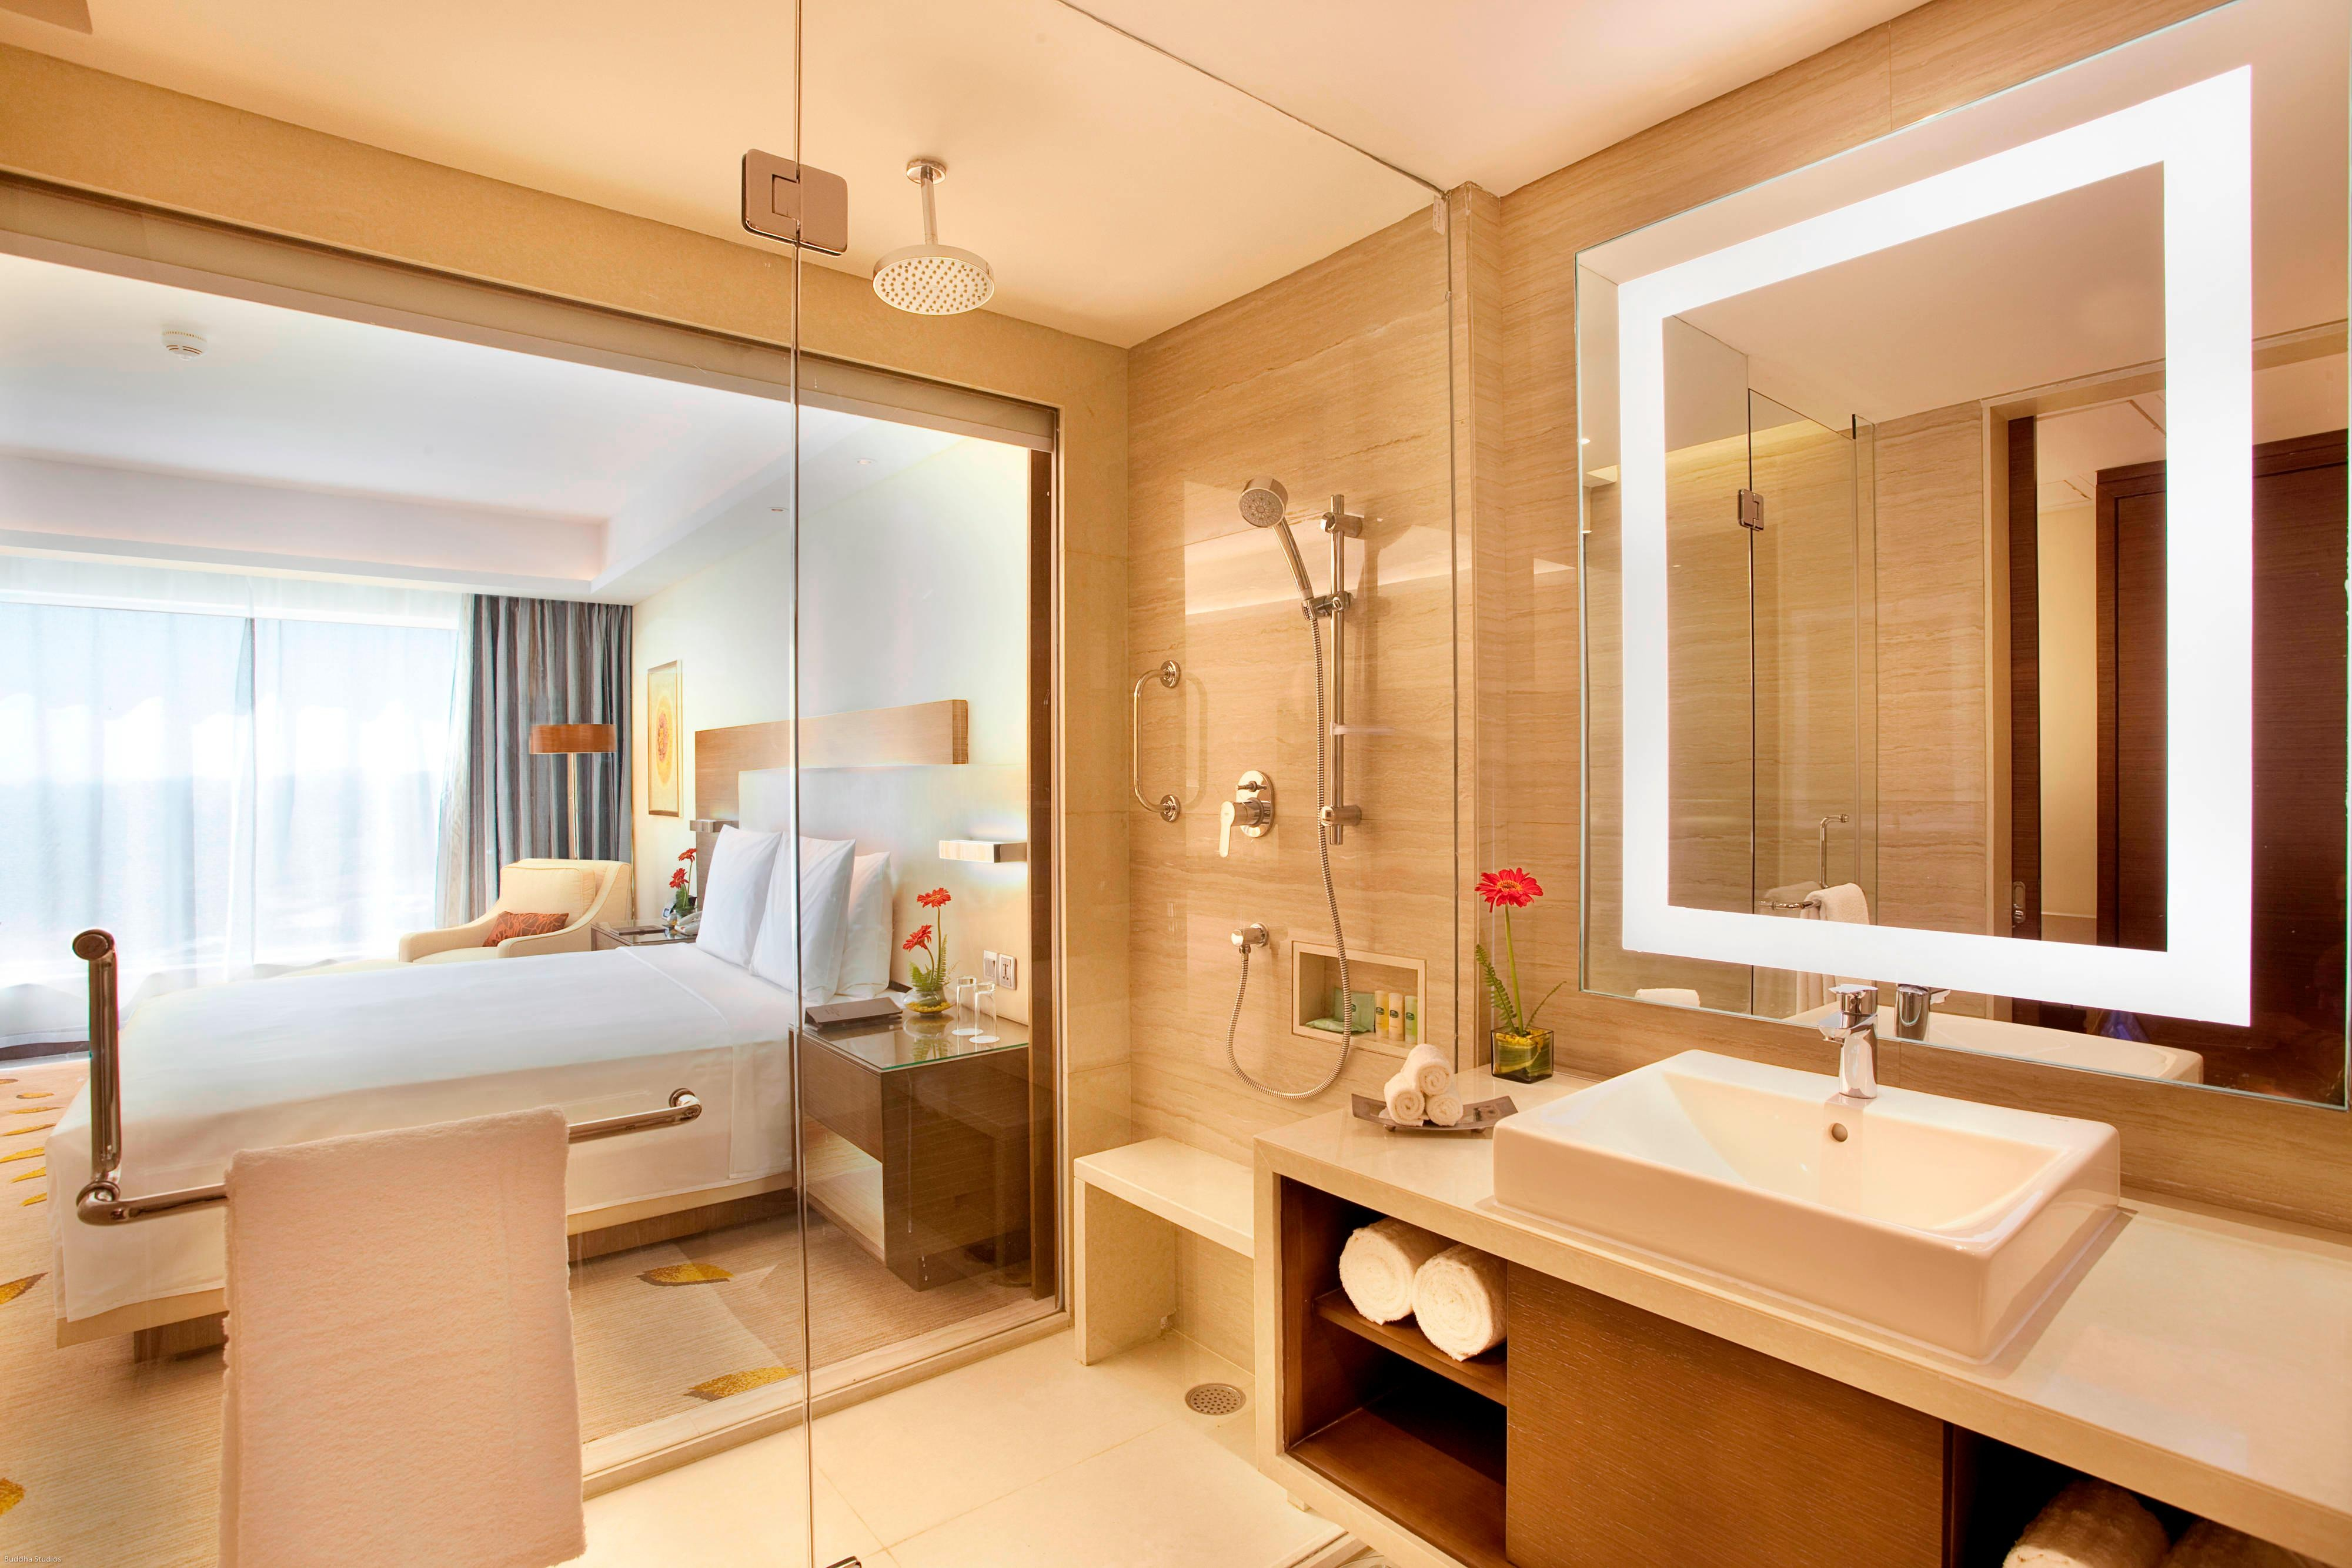 Deluxe king room in Bhopal